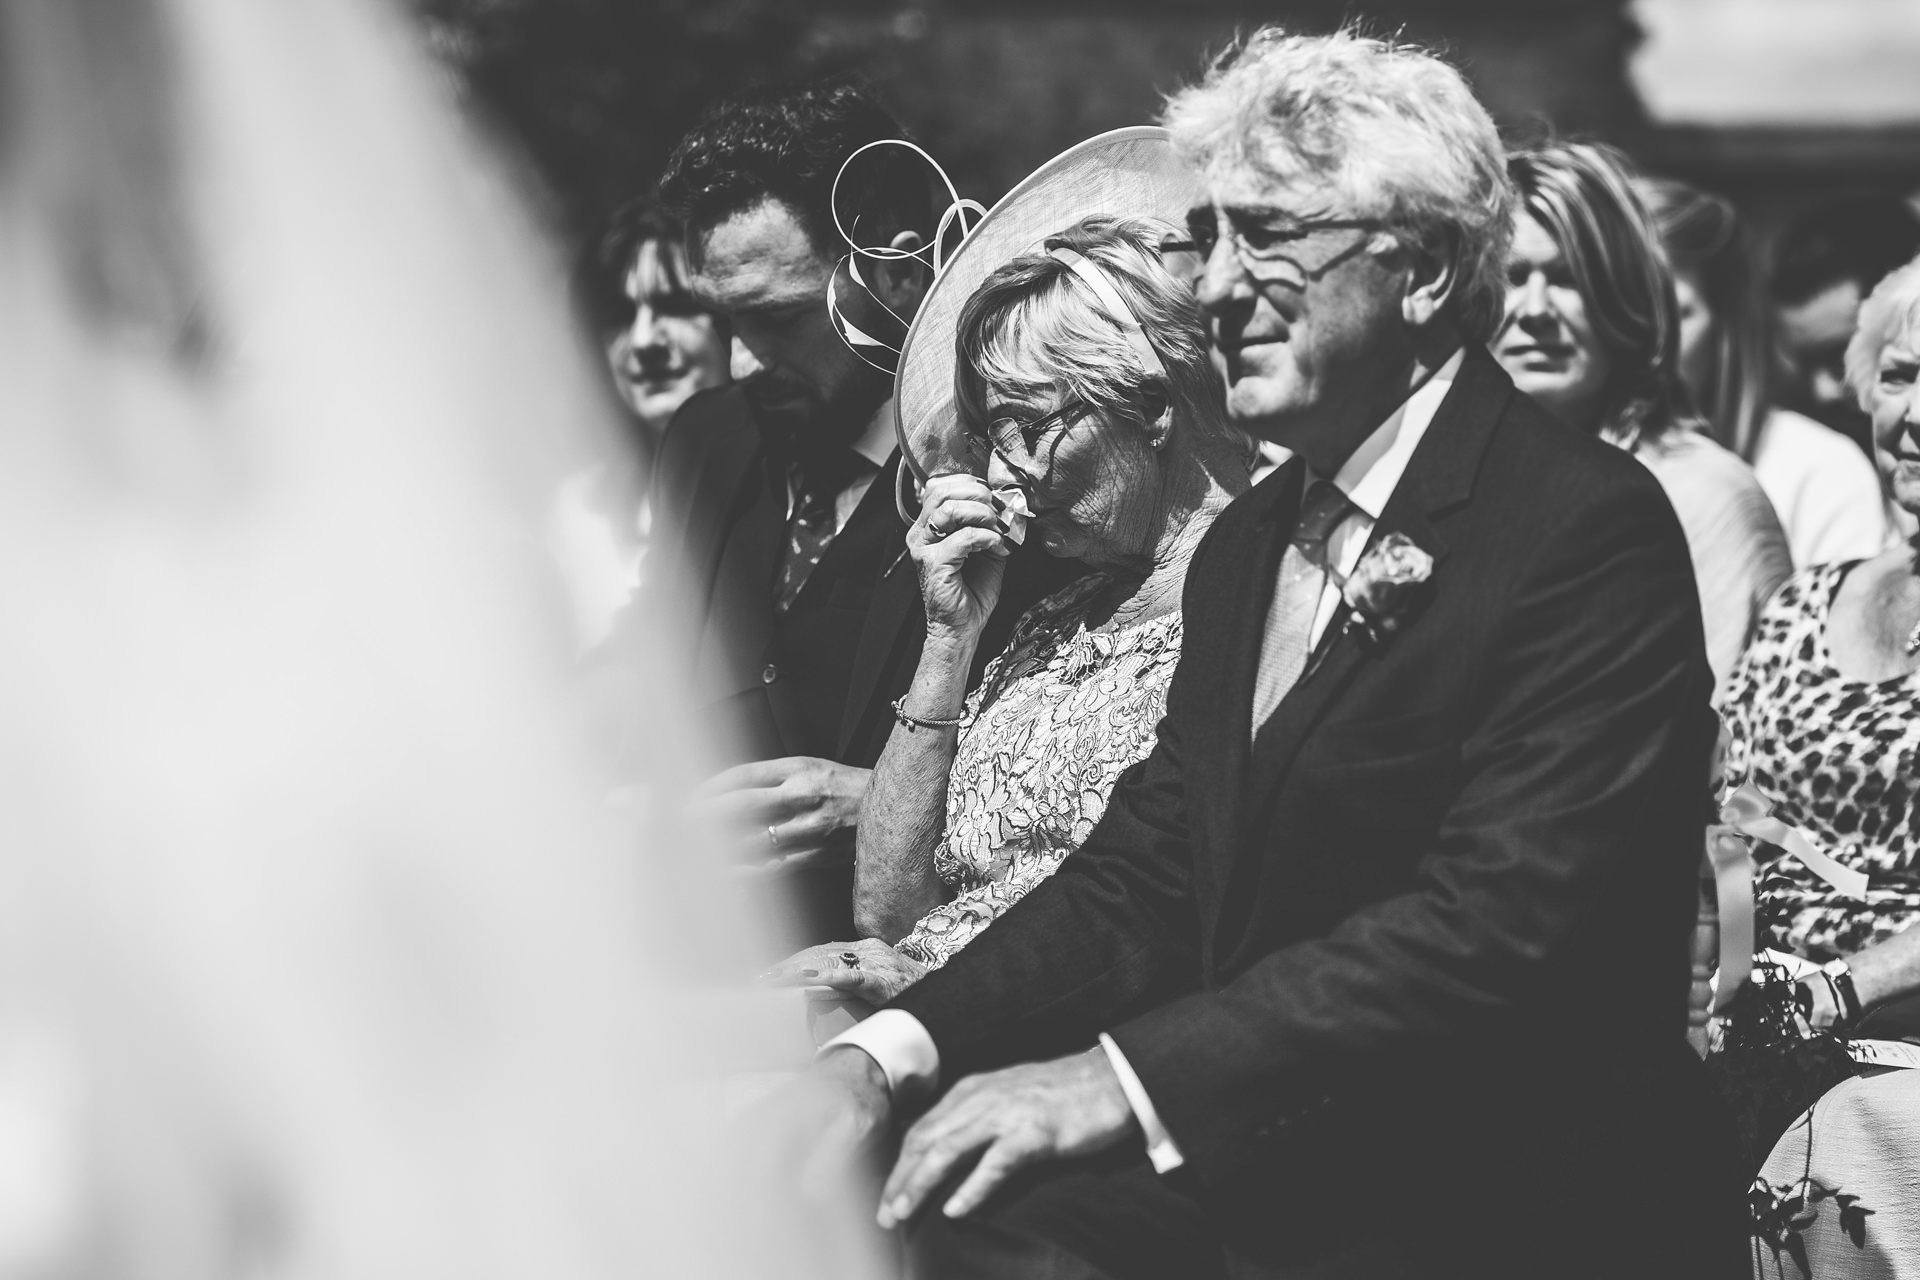 Best wedding photography 2016 - black and white guests during ceremony